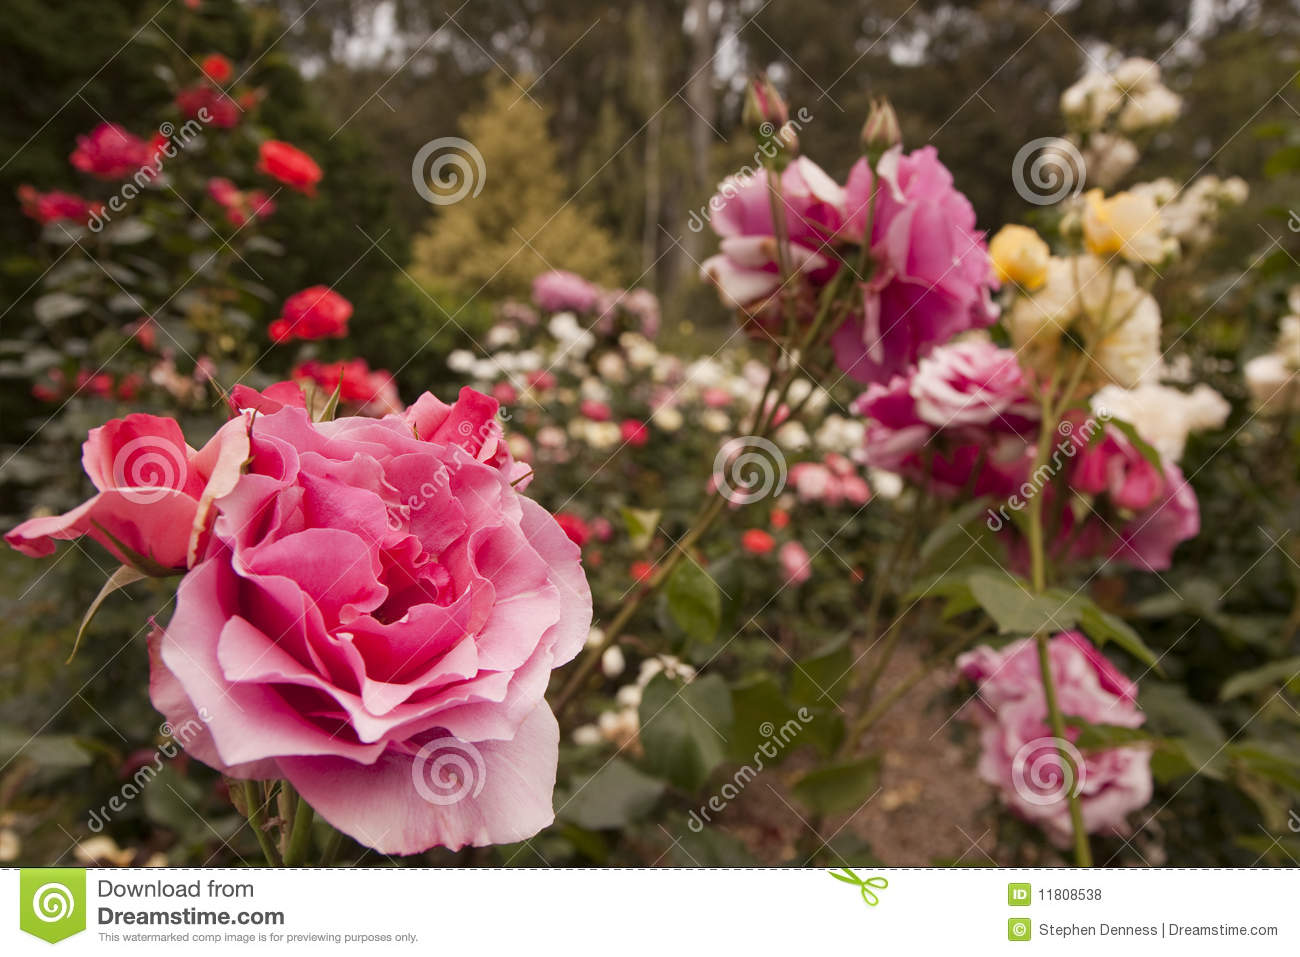 Rose Flower Garden Stock Photo. Image Of Flowers, Rose